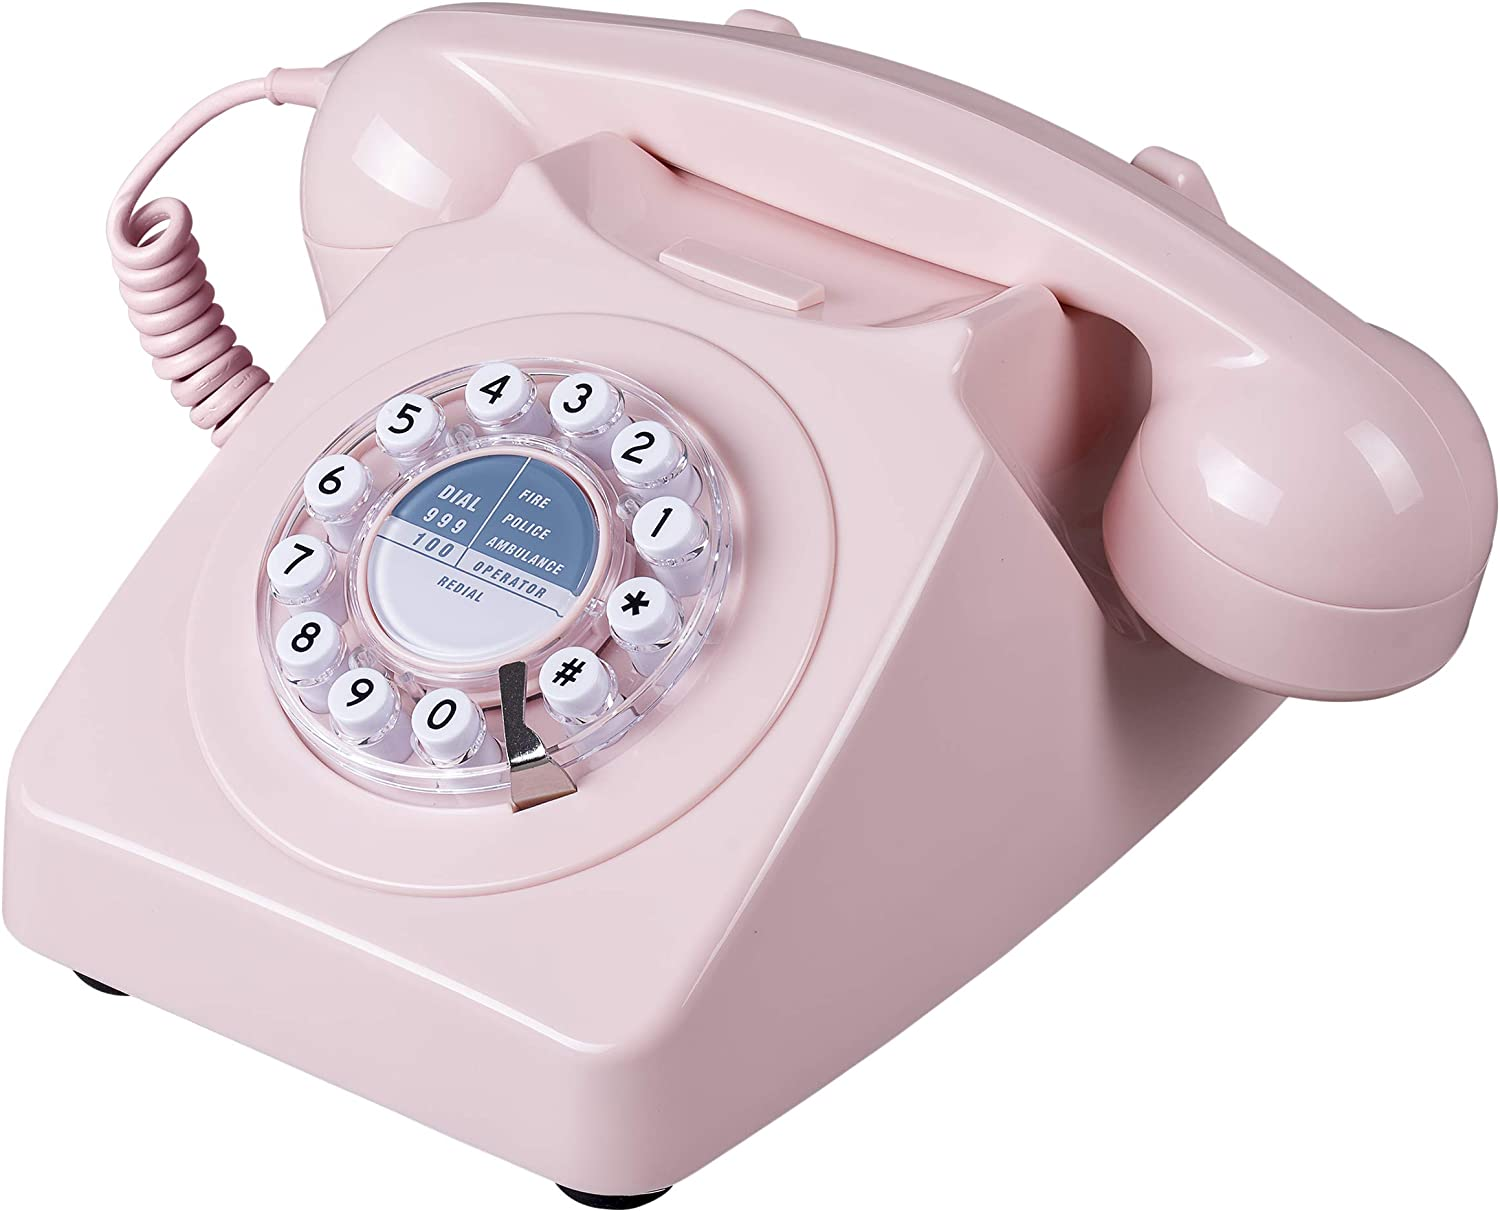 Wild Wood 746 Rotary Design Retro Landline Telephone Dusty Pink